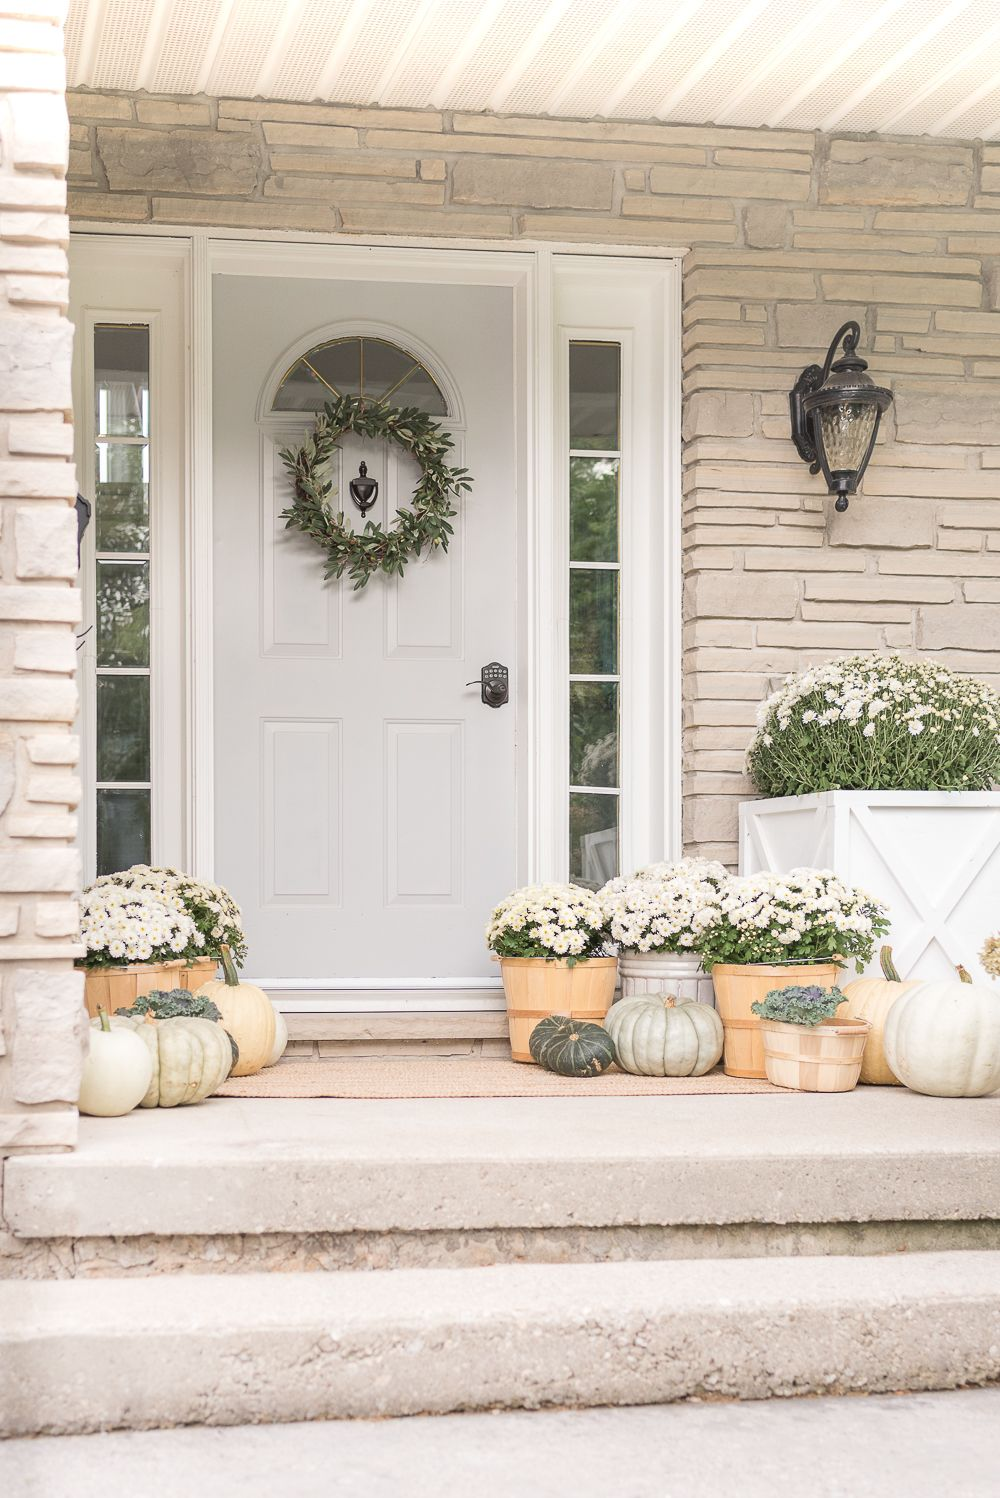 Welcome guests to your home this autumn with these simple and inexpensive front porch decorating ideas for fall.